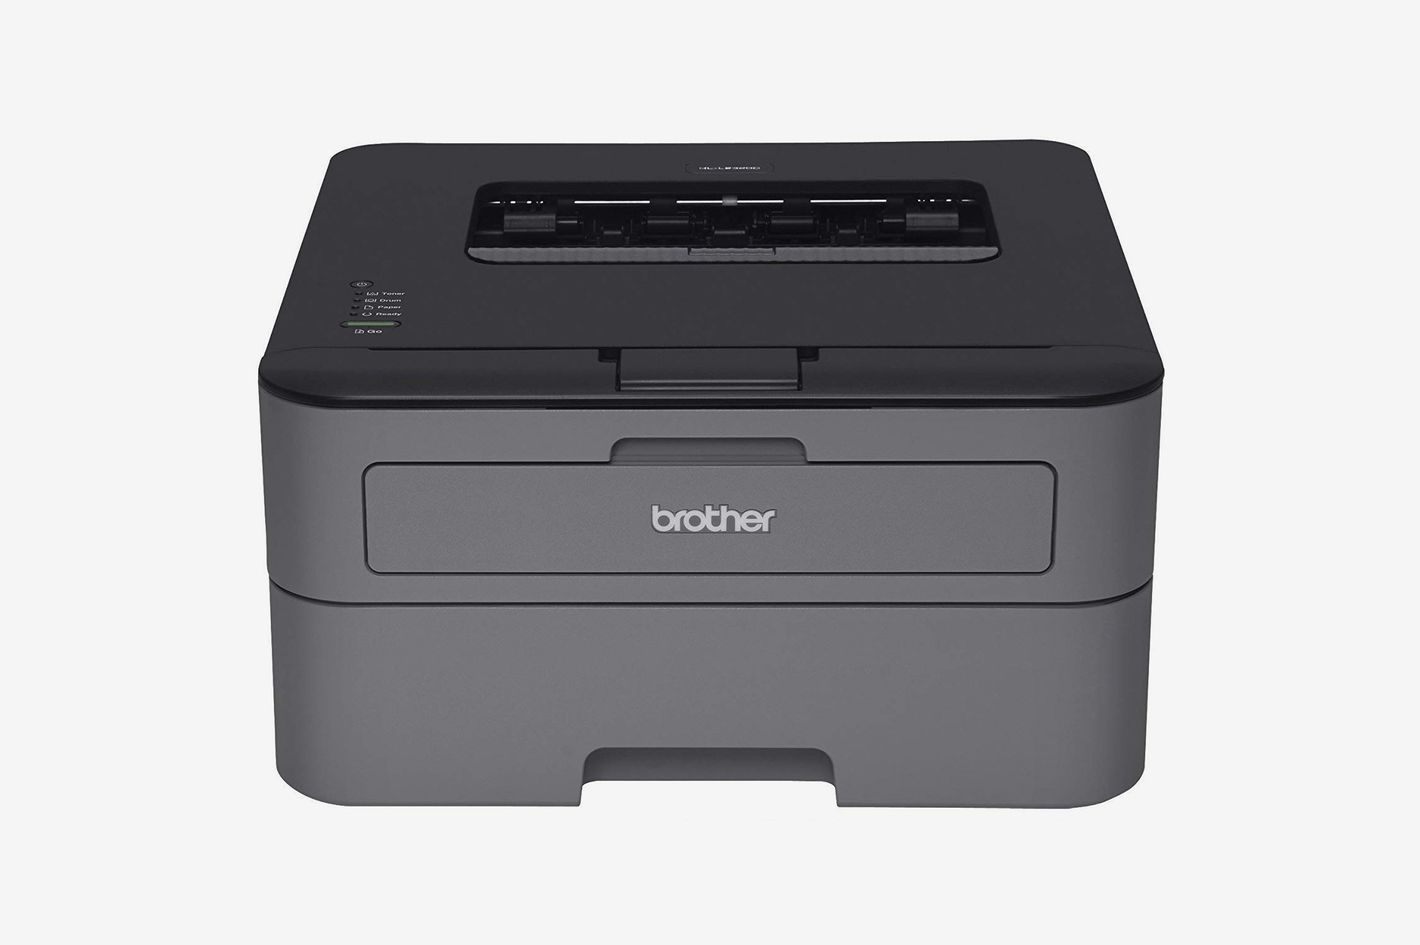 Brother Monochrome Laser Printer with Duplex Printing